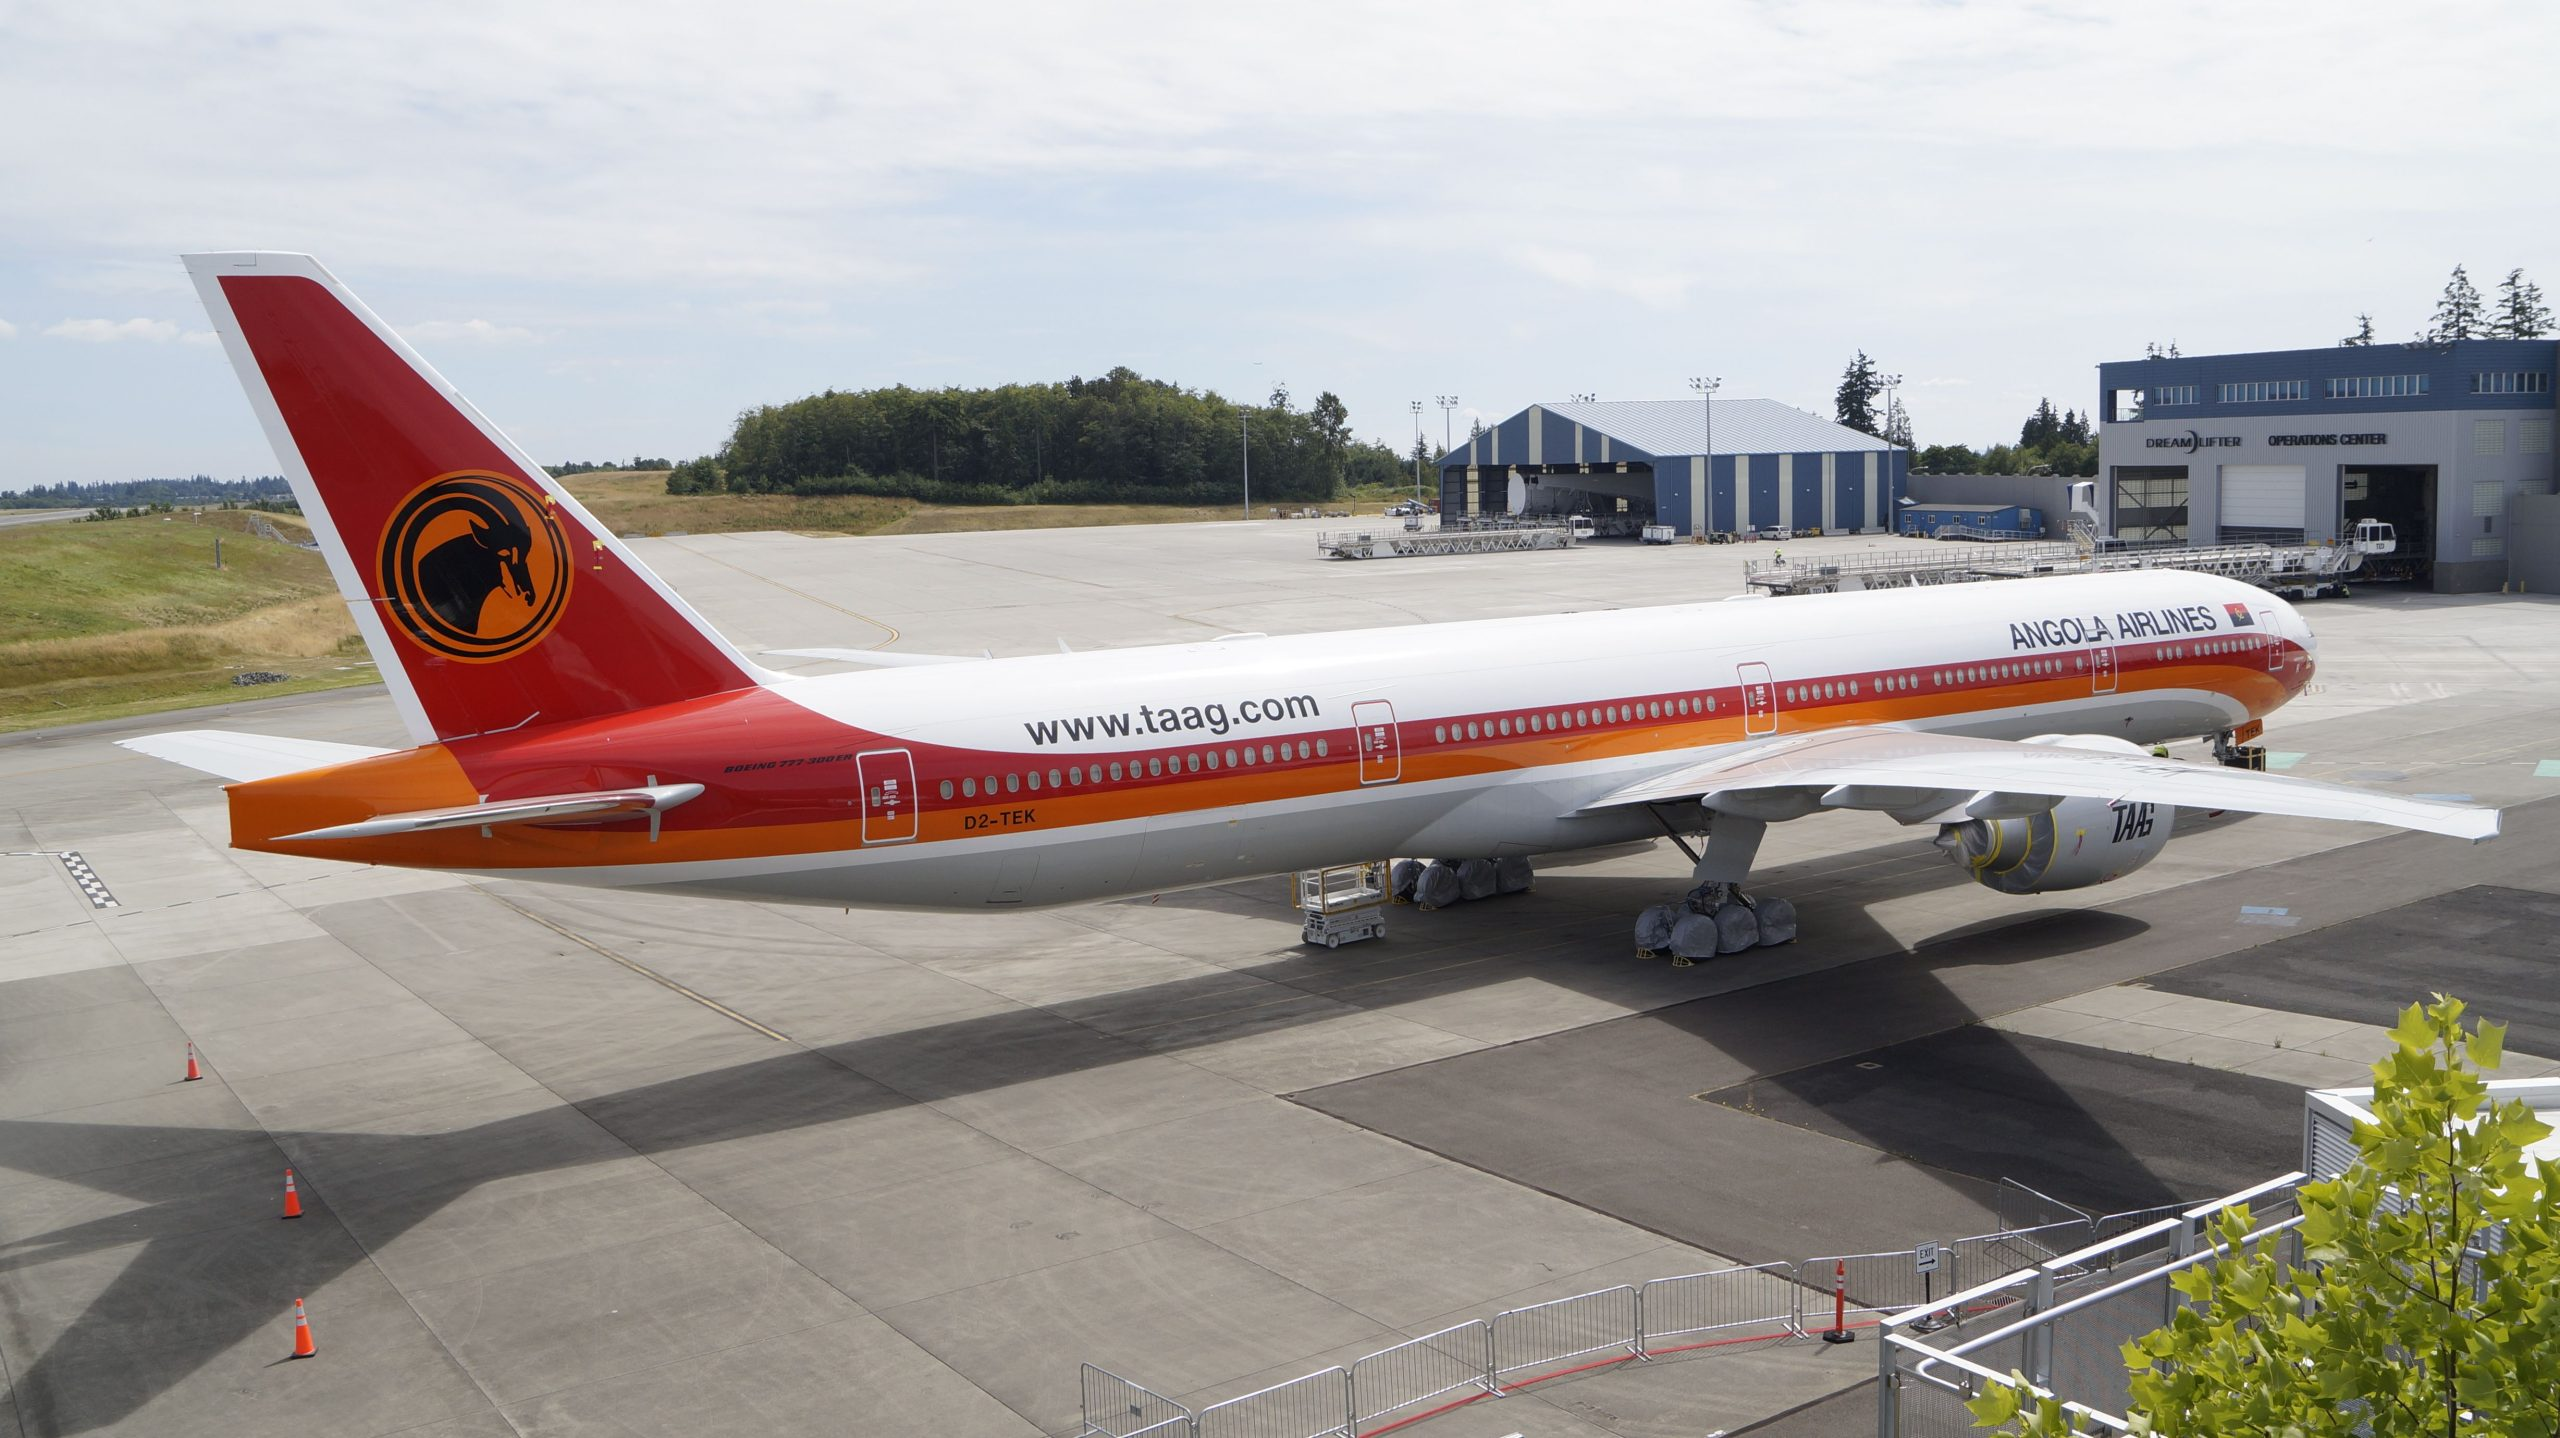 FG impounds Angola Airlines plane in MMIA, Lagos